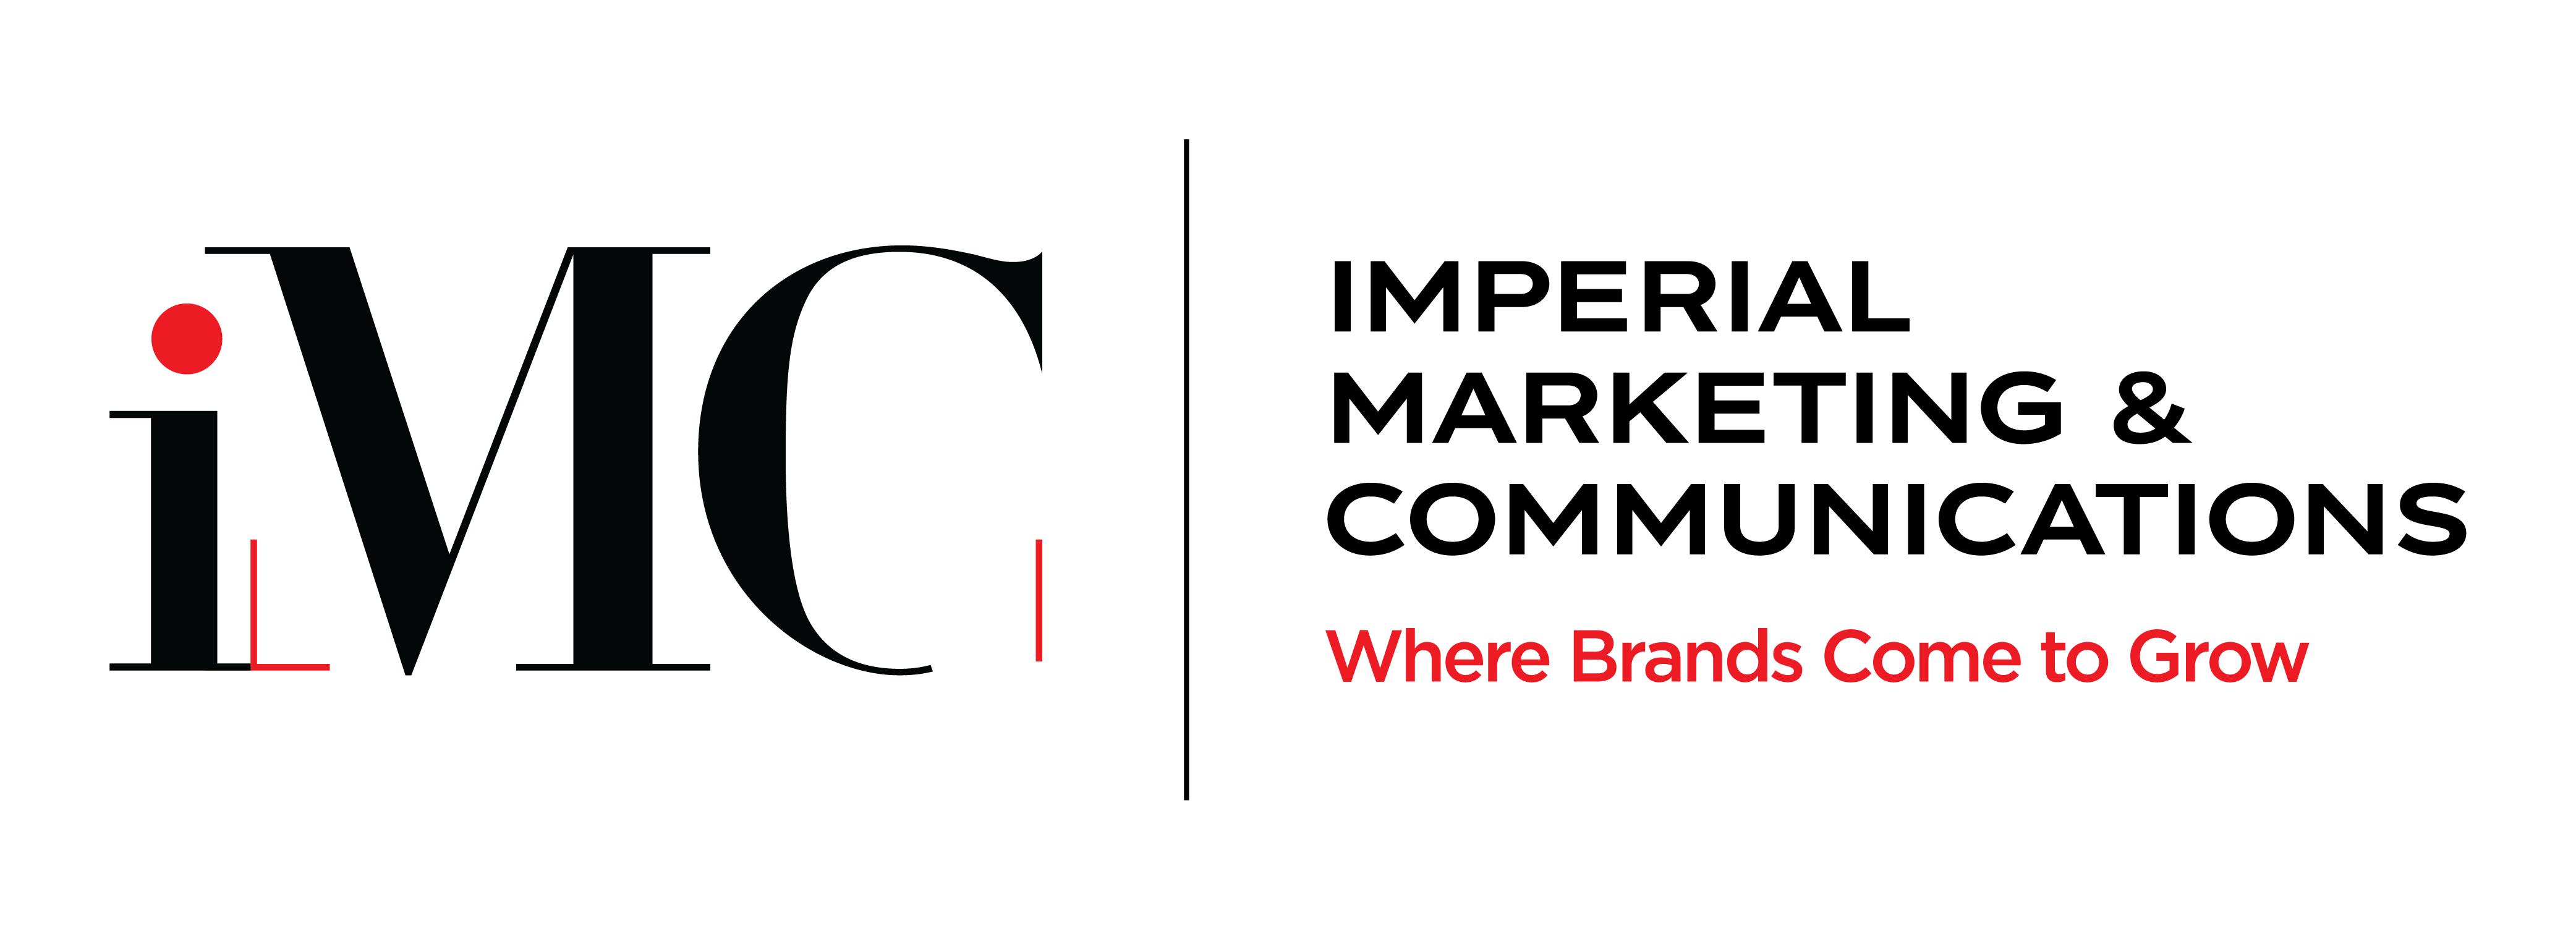 Imperial Marketing & Communications